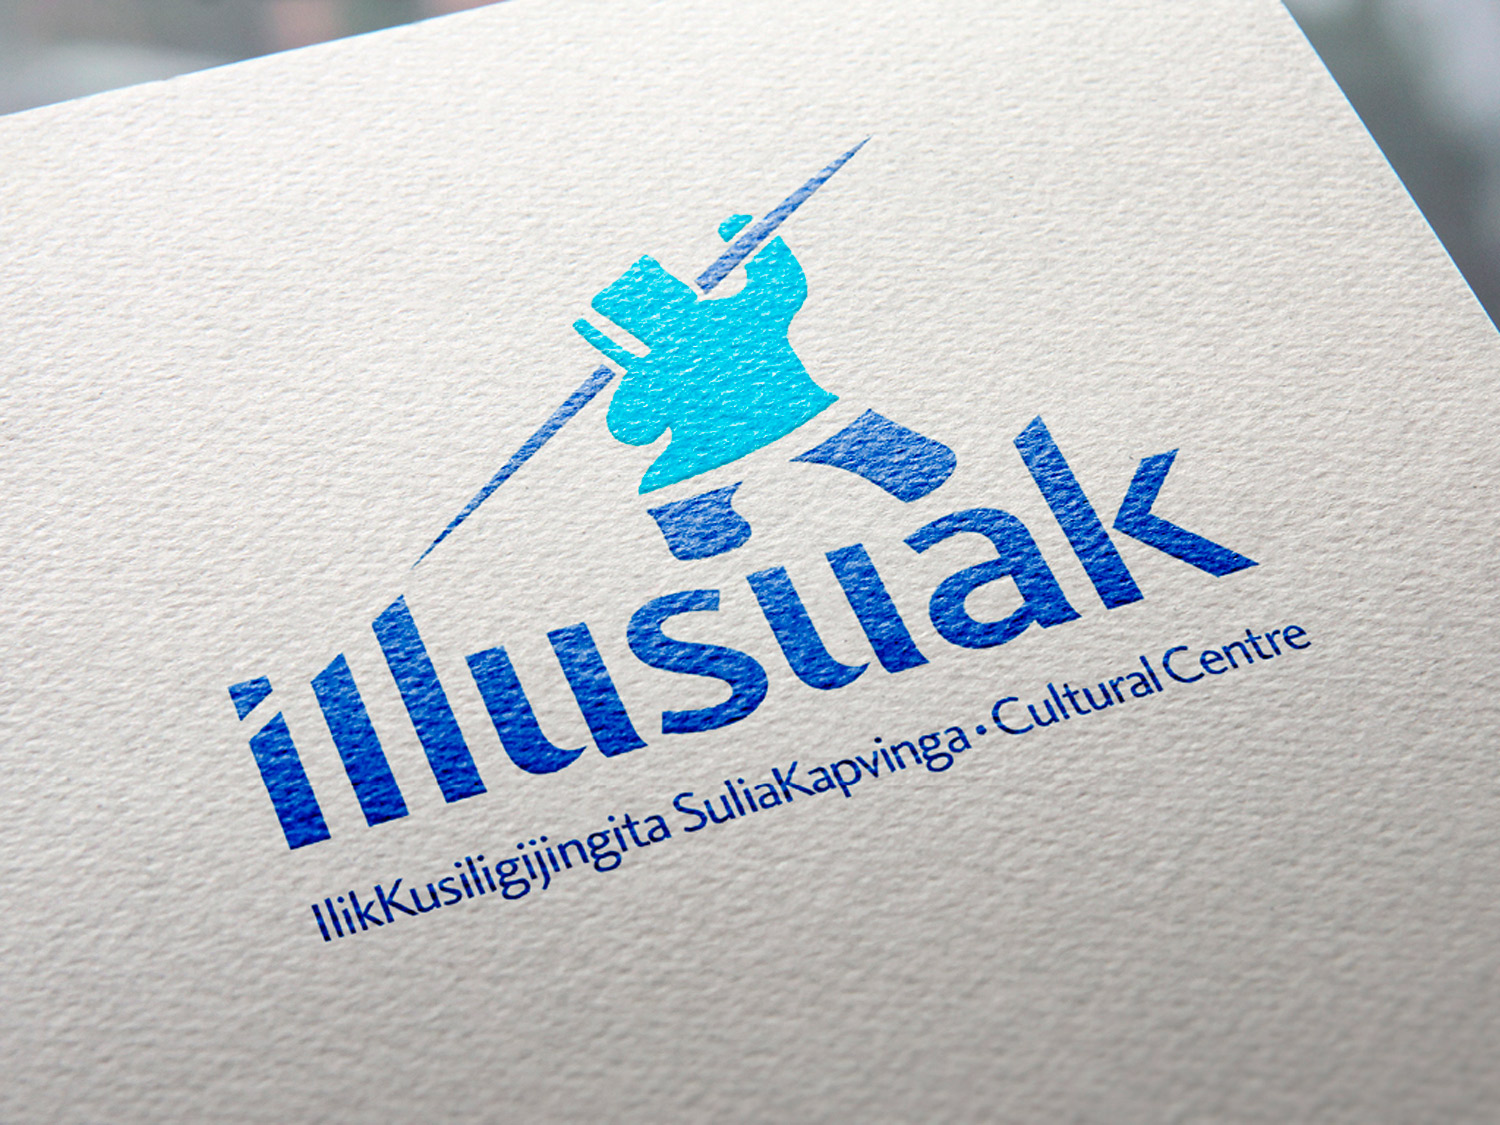 LOGOTYPE The resulting logo positions Inuit heritage as the hero of the identity, referencing thehunter-gatherer culture of the region.